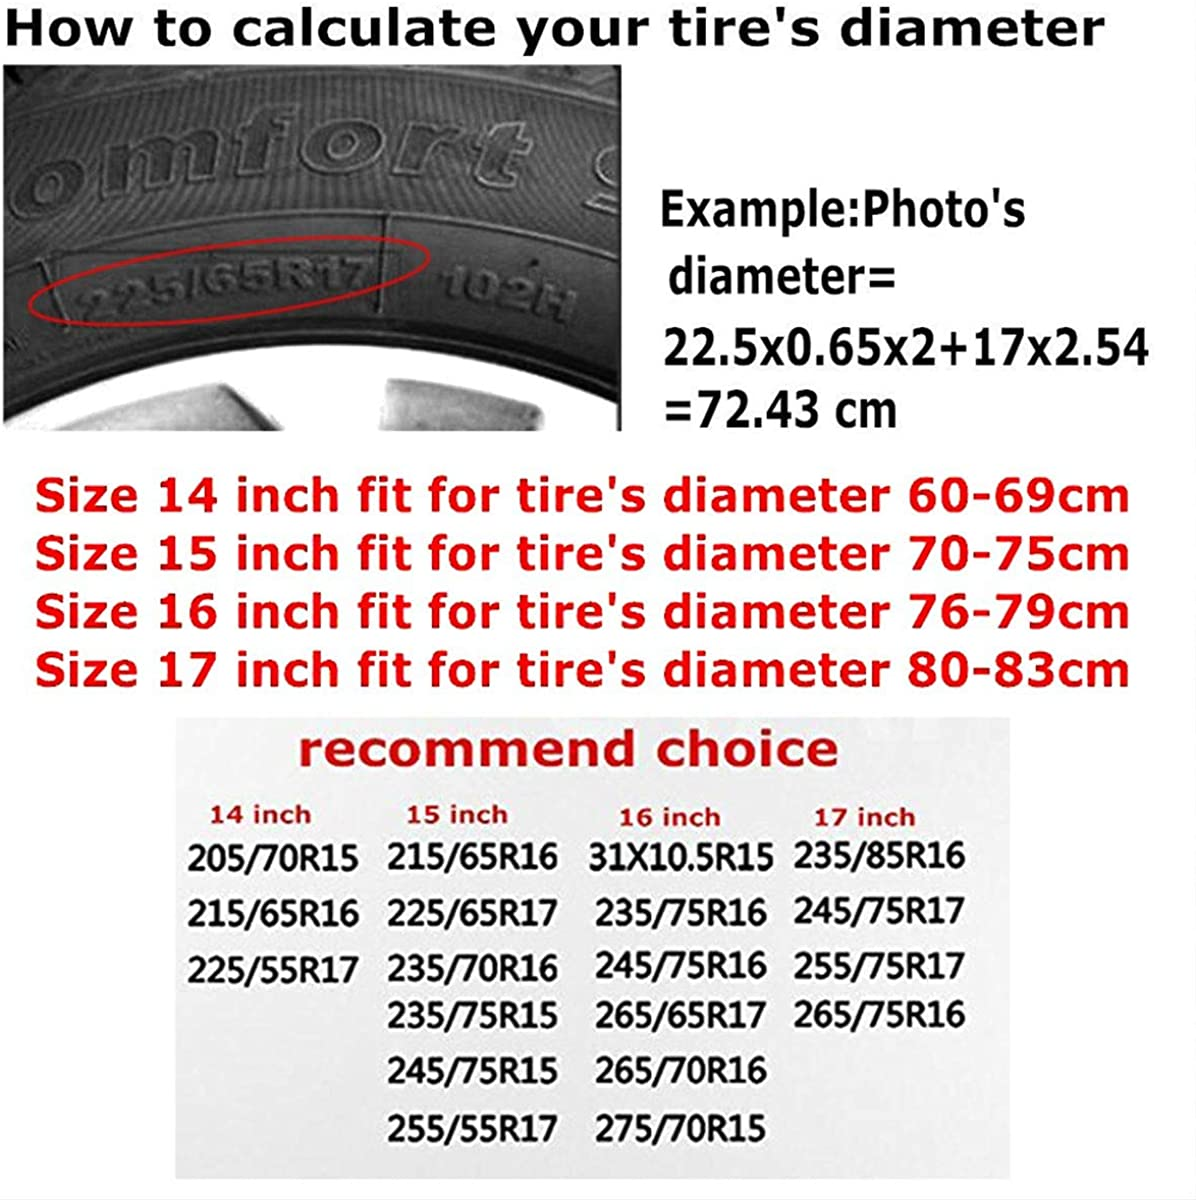 14,15,16,17 Inch LiBei Never Camp Alone Dog Waterproof Spare Tire Cover Fits for Trailer RV SUV Truck Camper Travel Trailer Accessories